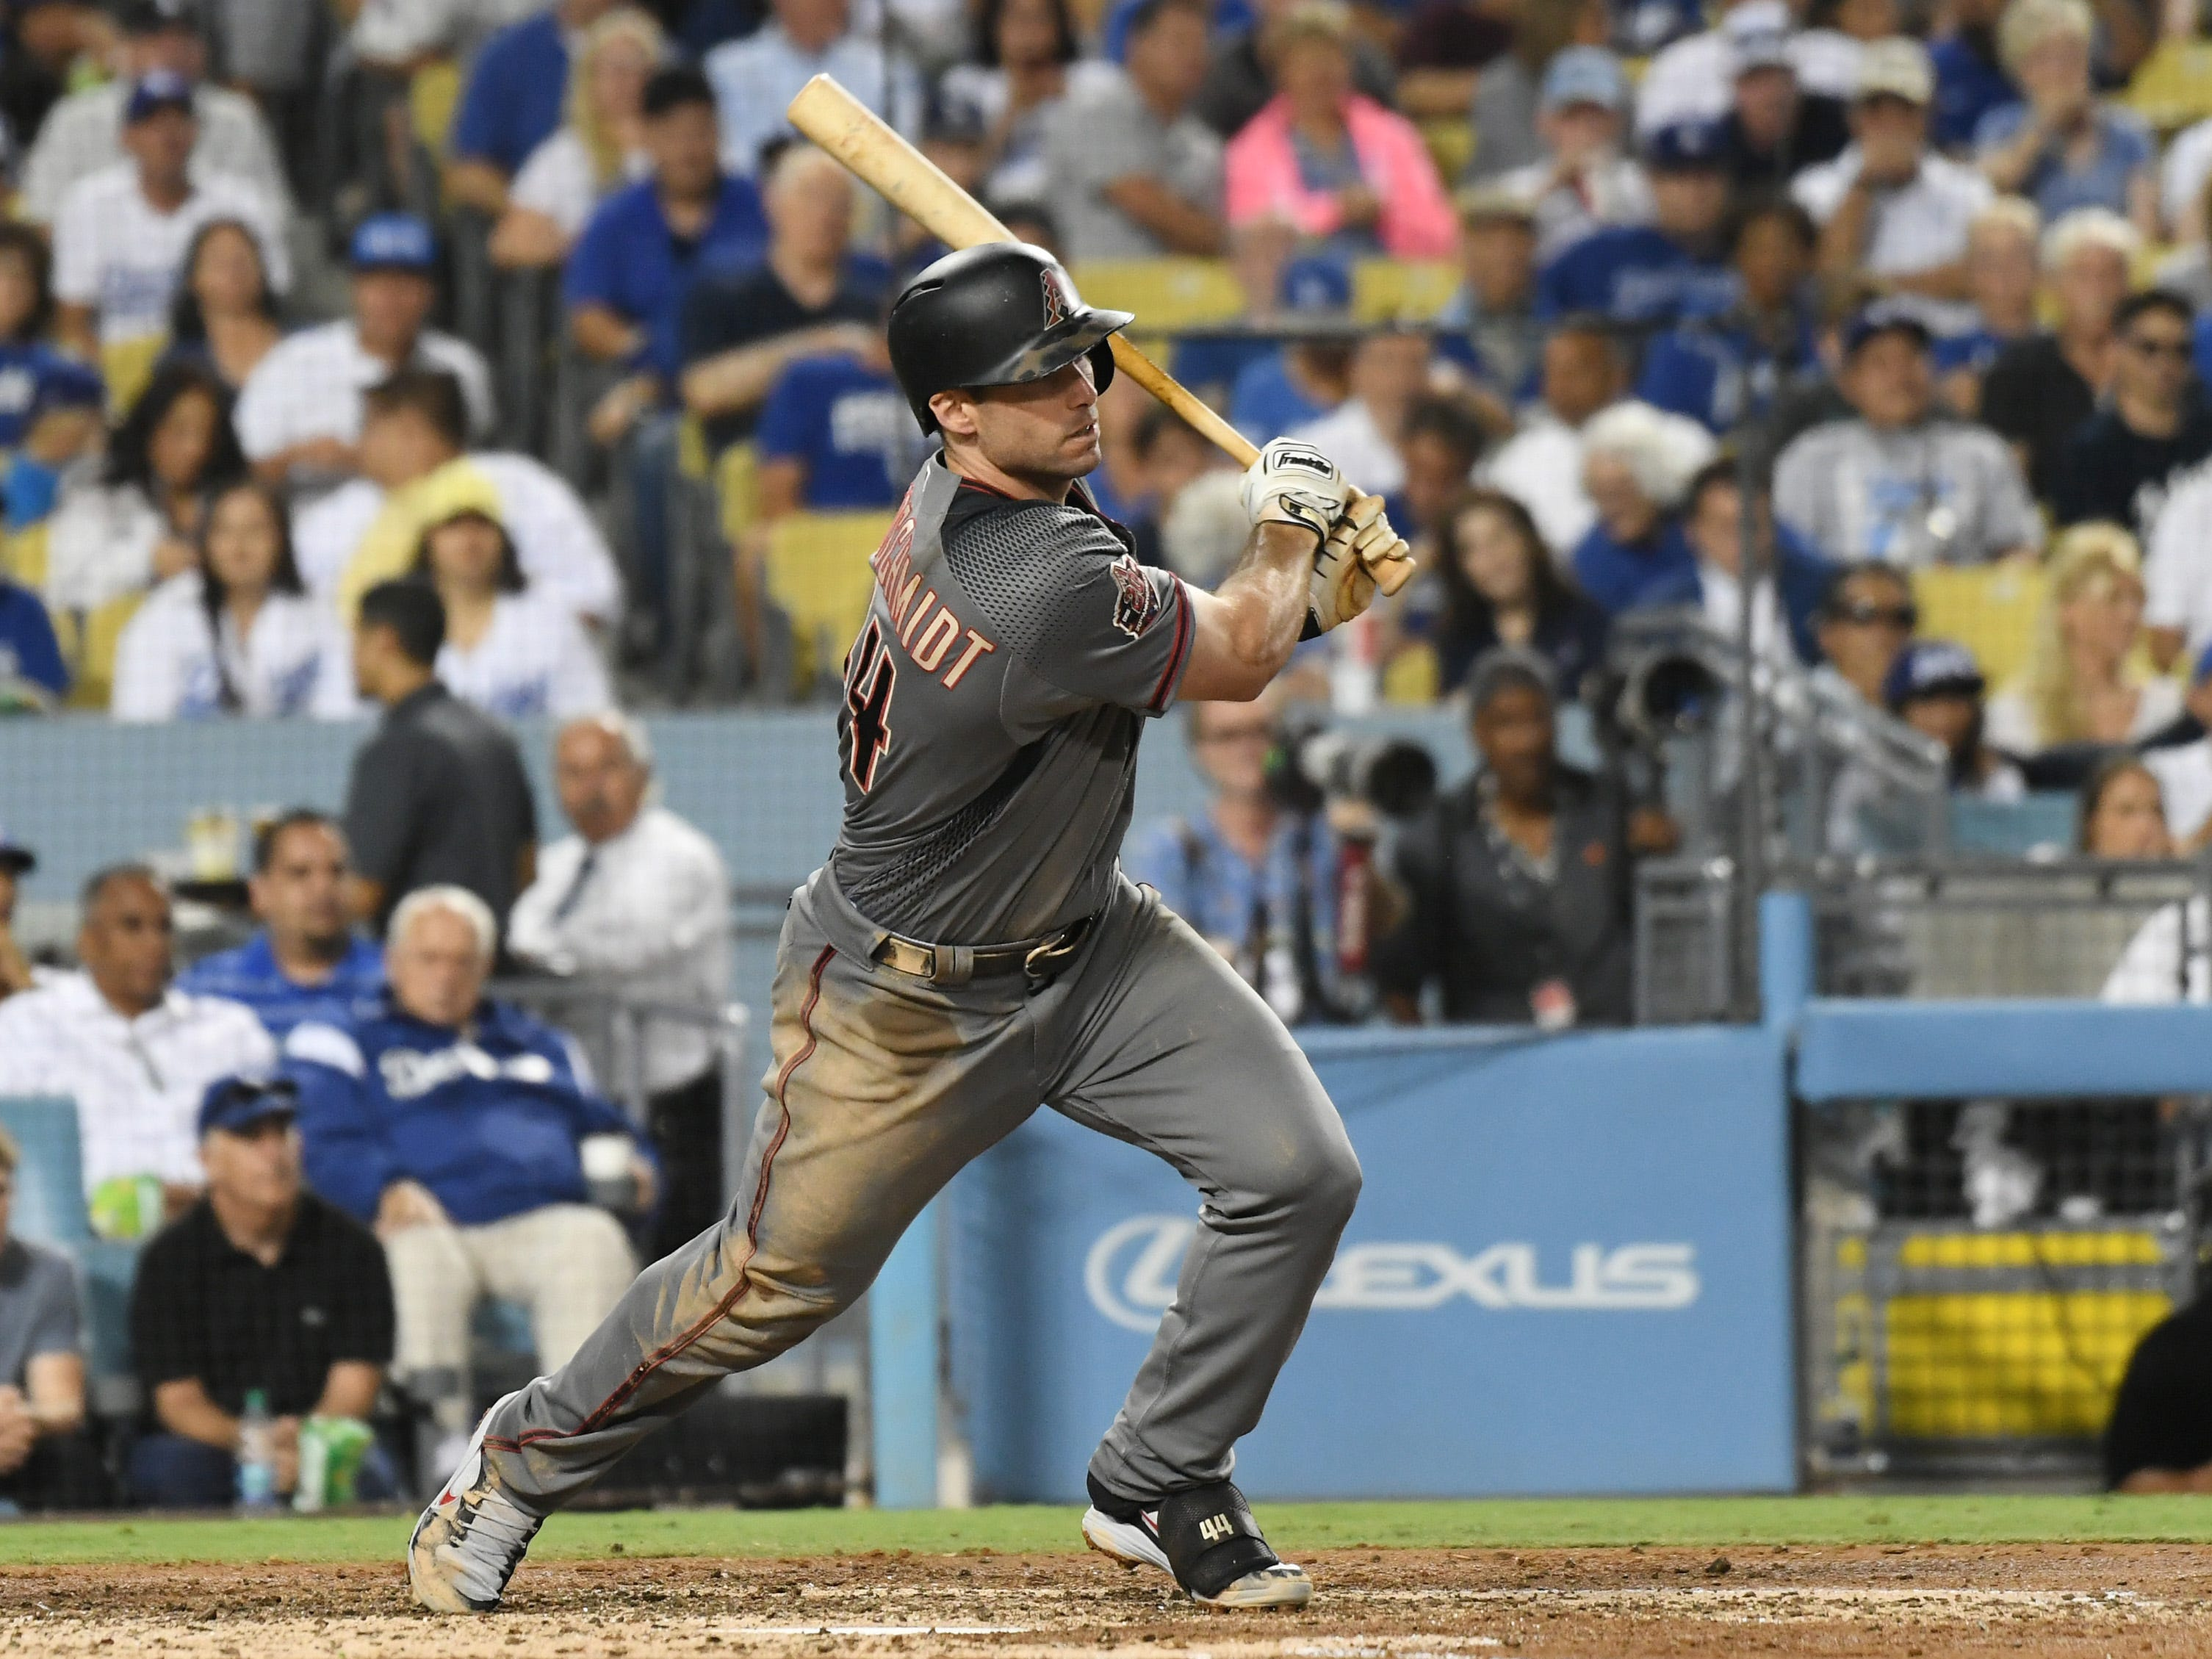 Aug 30, 2018; Los Angeles, CA, USA; Arizona Diamondbacks first baseman Paul Goldschmidt (44) hits a single against the Los Angeles Dodgers in the third inning at Dodger Stadium. Mandatory Credit: Richard Mackson-USA TODAY Sports